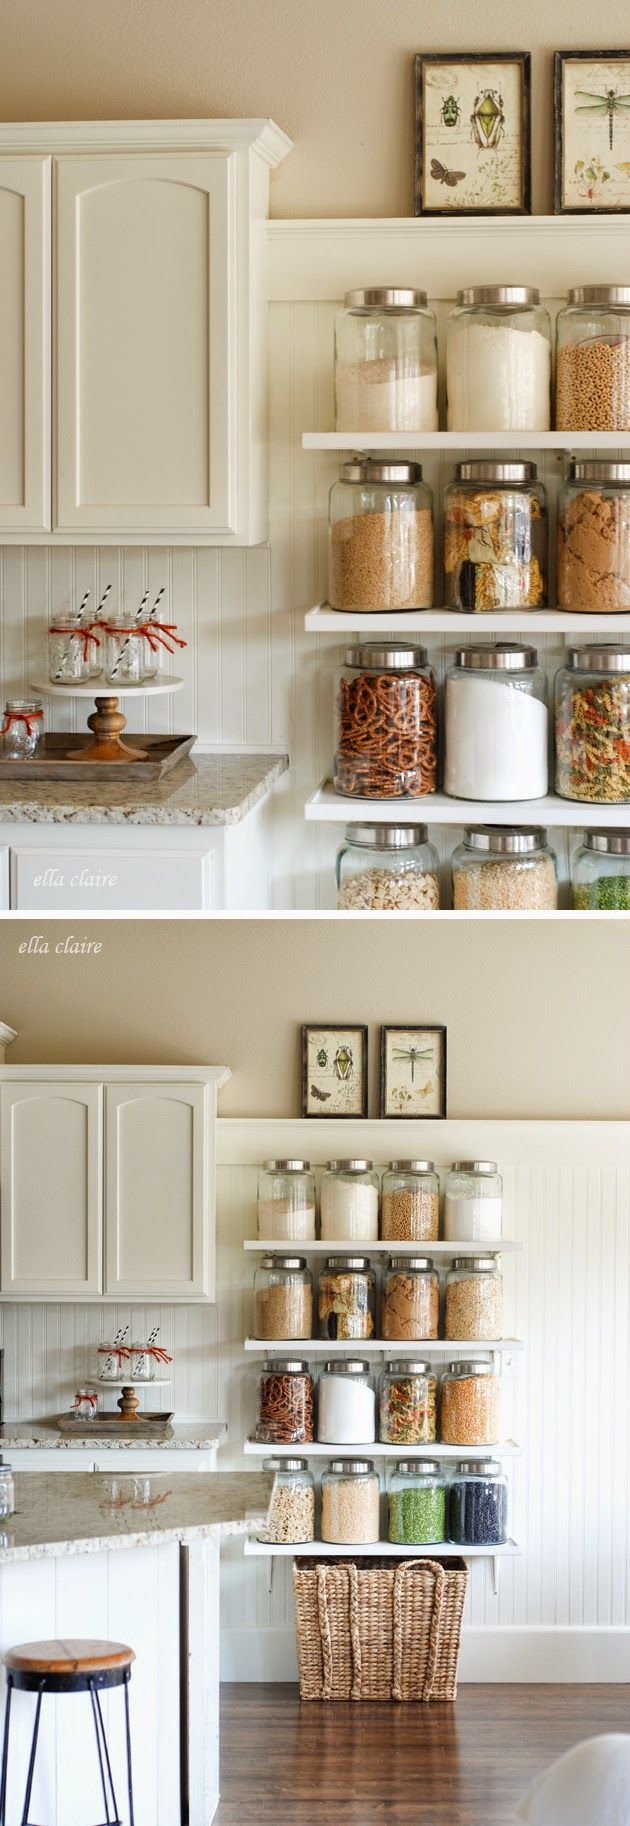 Diy Country Store Kitchen Shelves Glass Canisters Shelving And Pantry